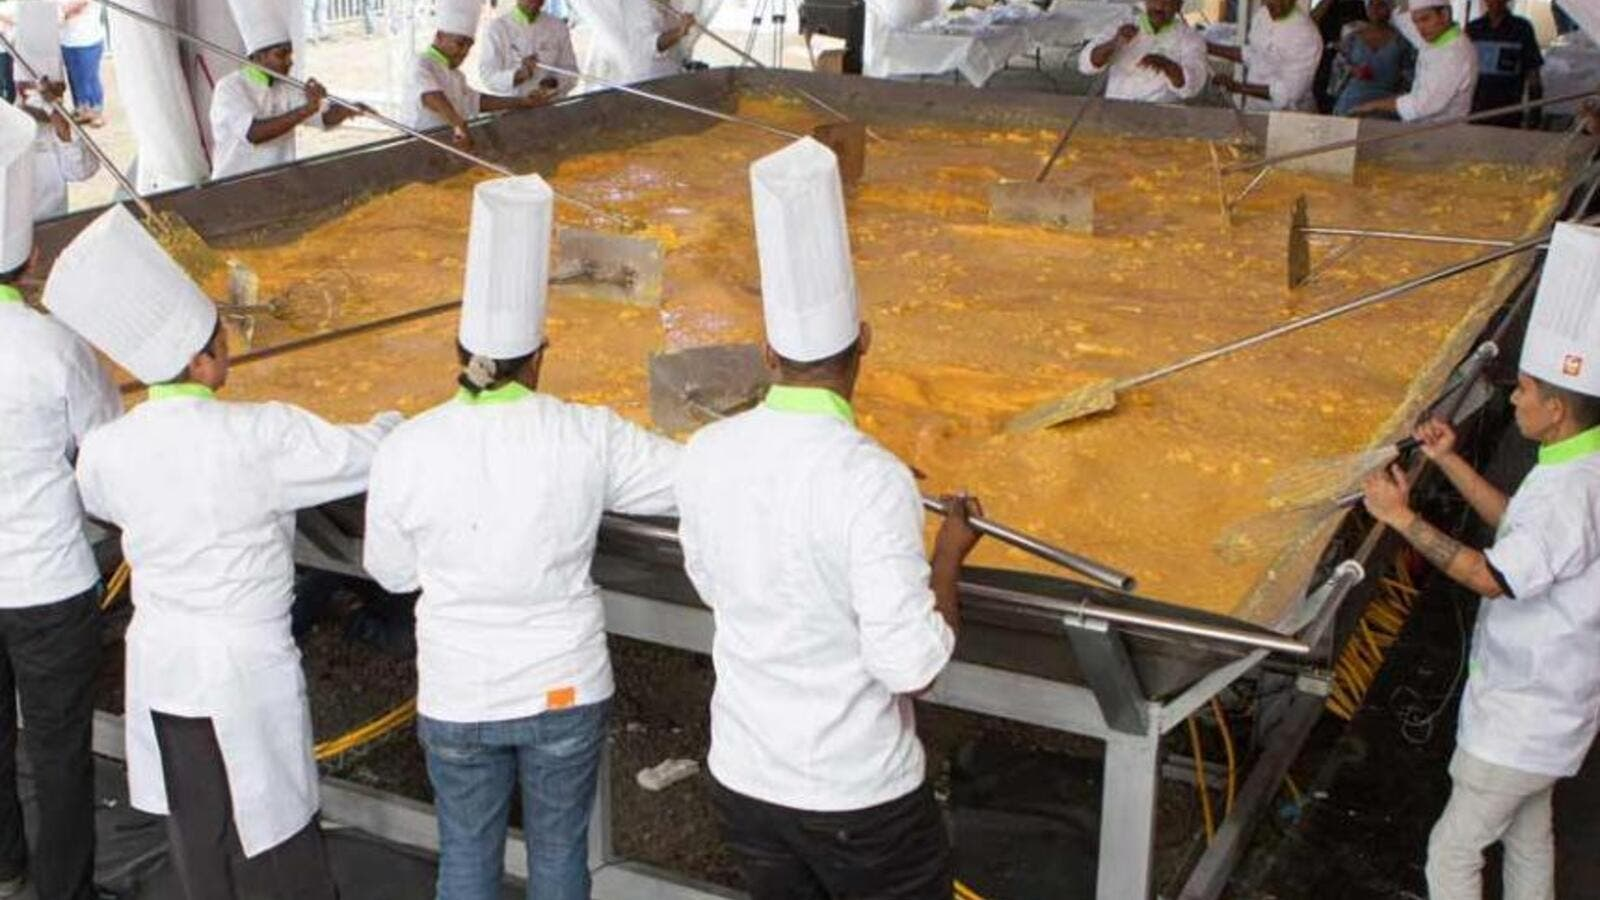 A nearly 5,500-pound batch of scrambled eggs cooked up by a team of chefs in Mauritius was certified as the world's largest. (Guinness World Records)